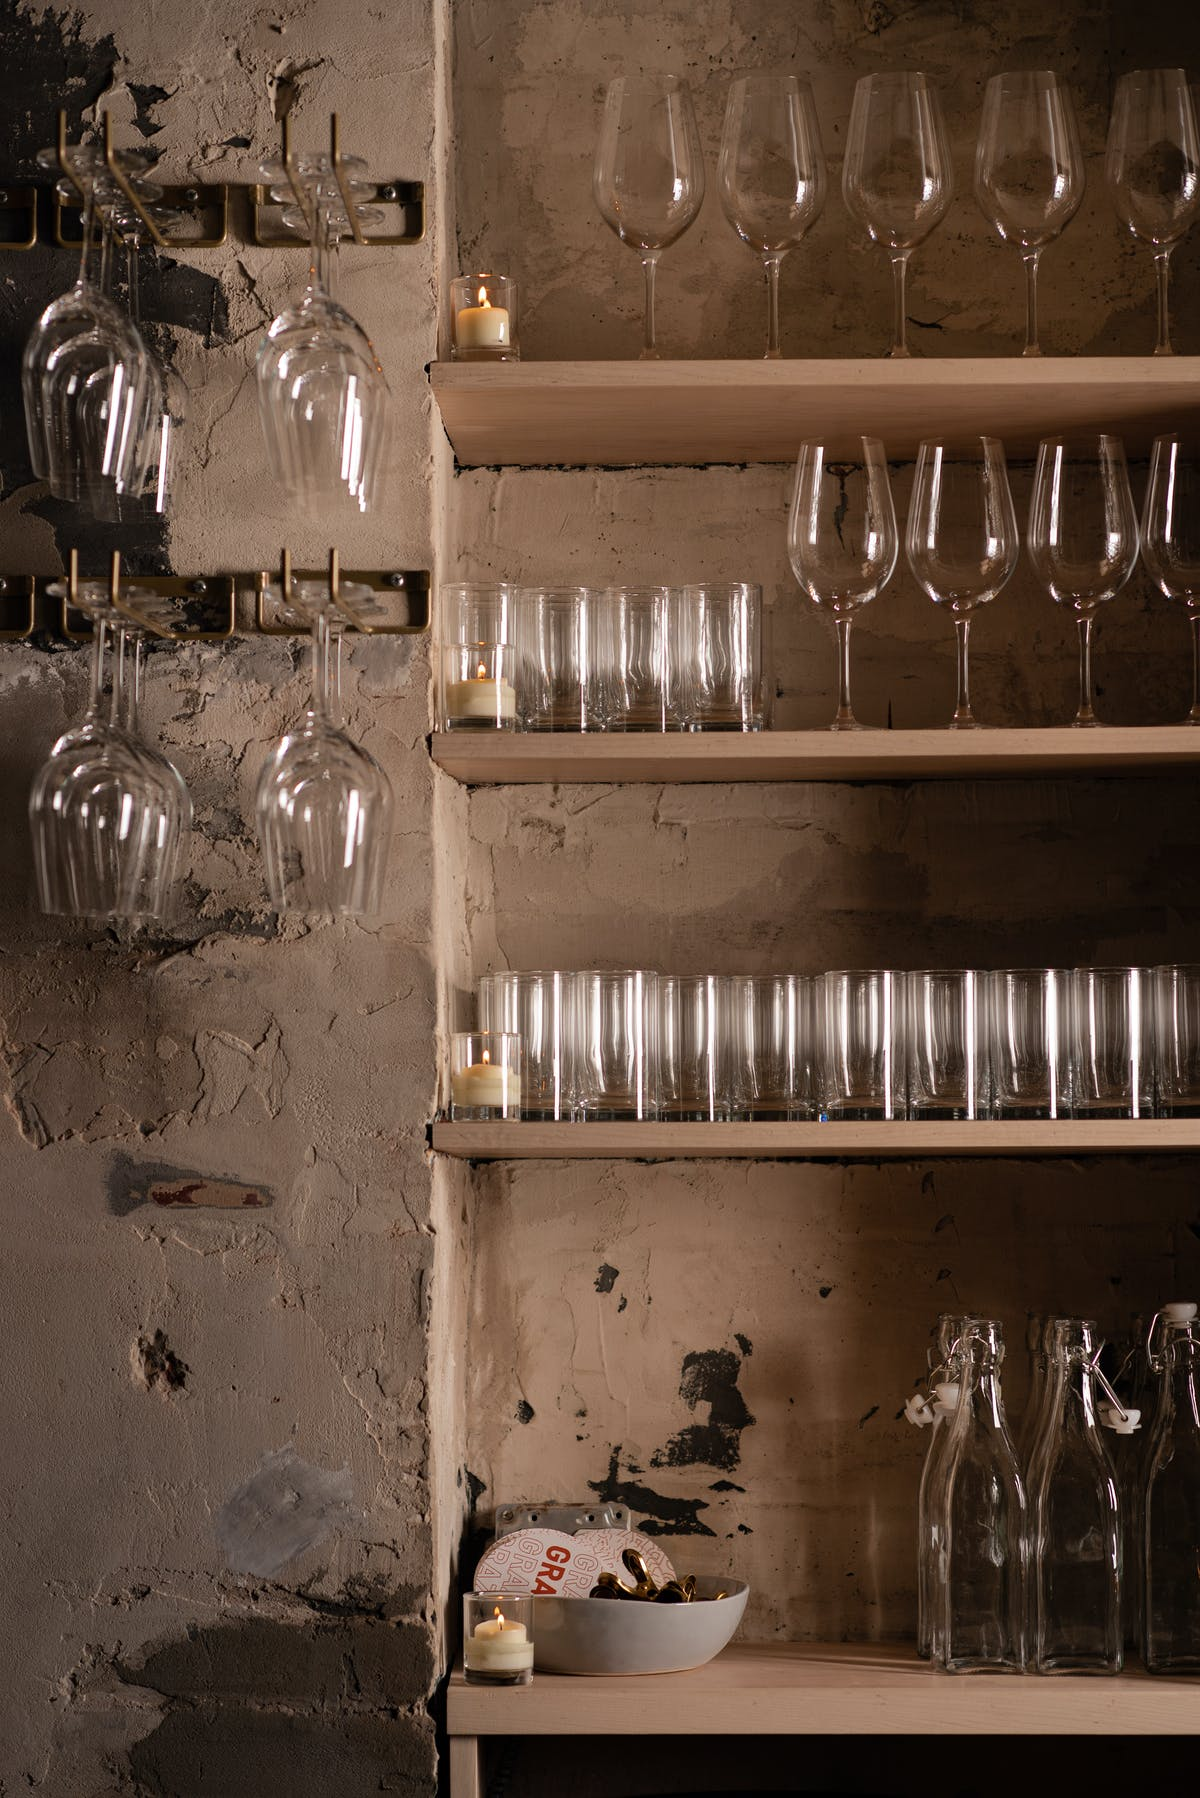 a store shelf filled with wine glasses